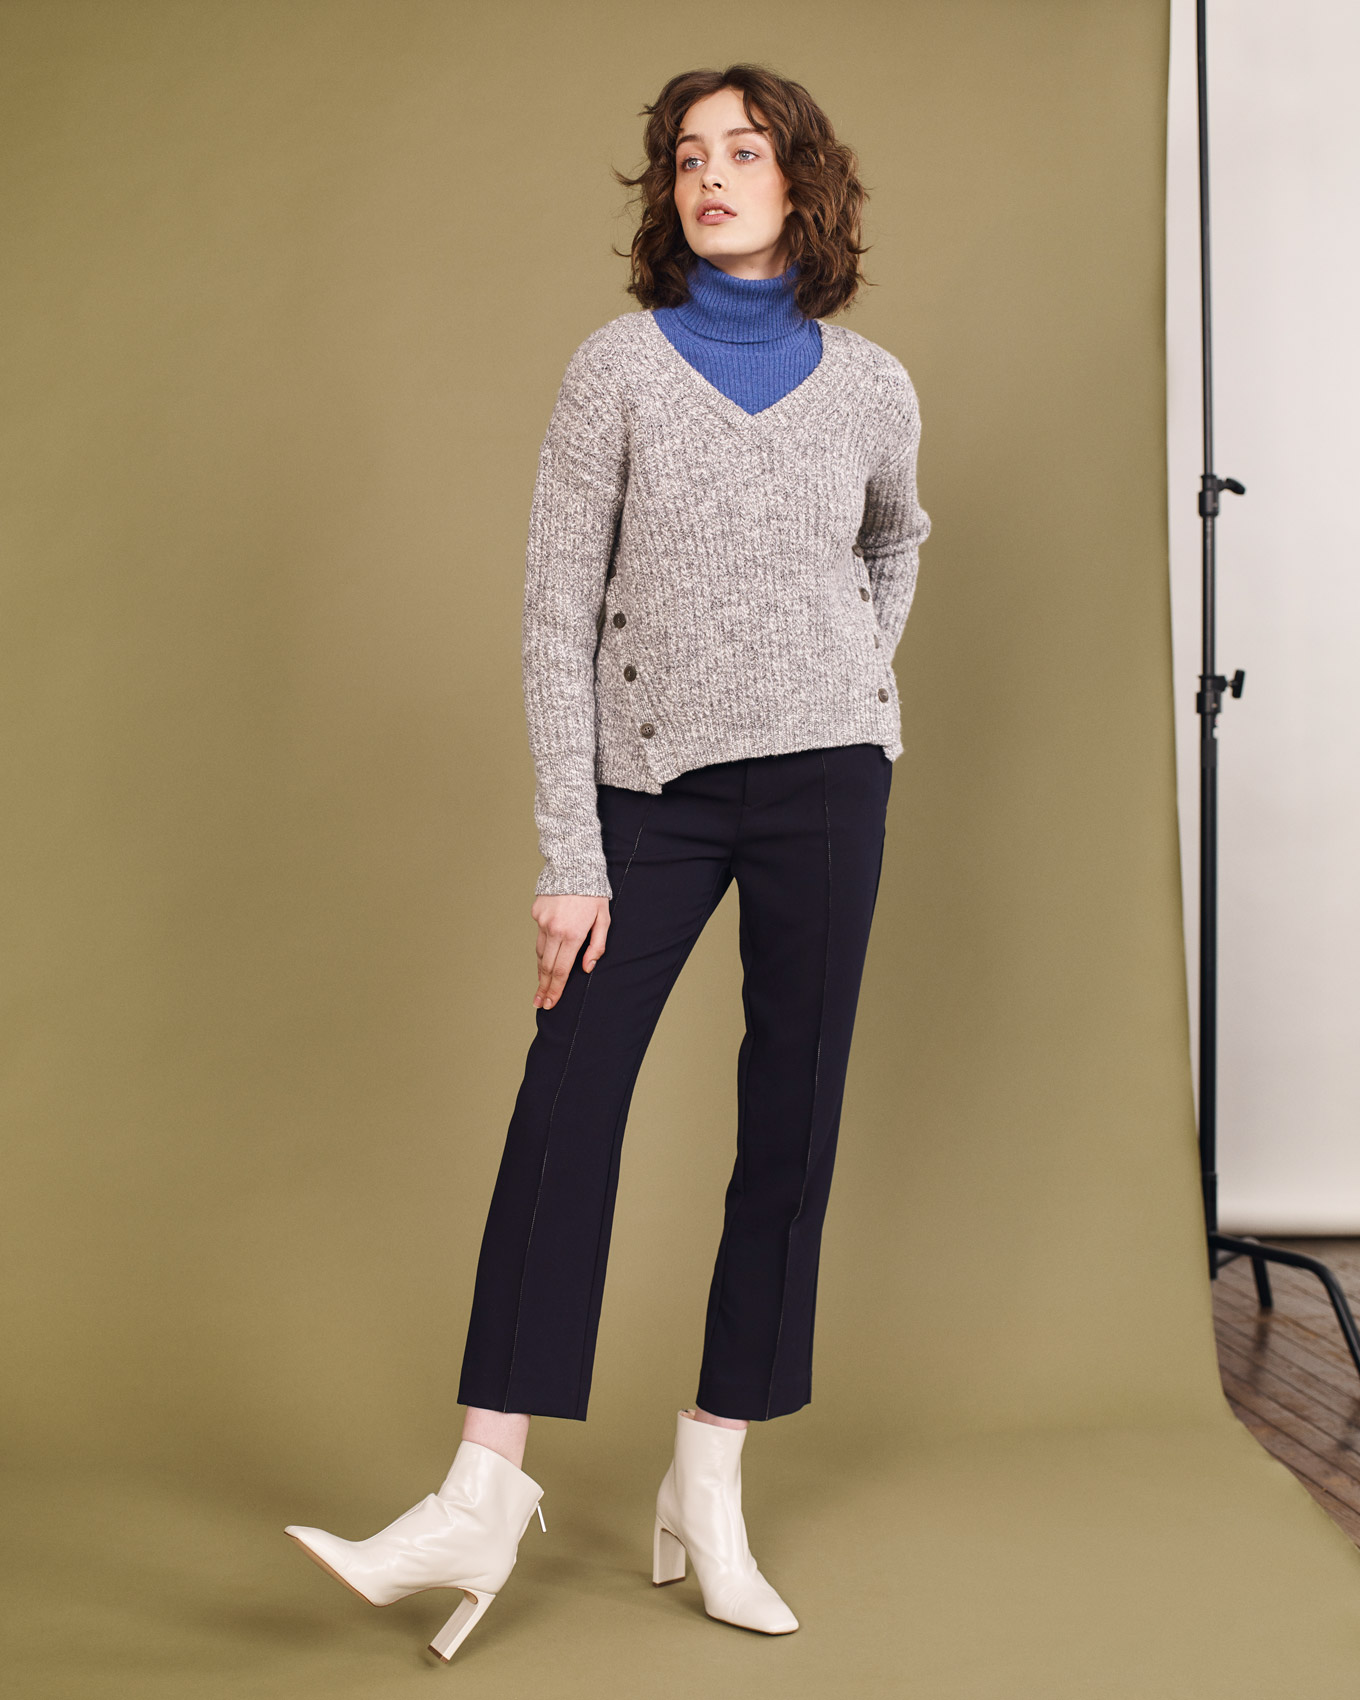 hellotpd_Bettina_Bati_Duffy_Lookbook_2019_11